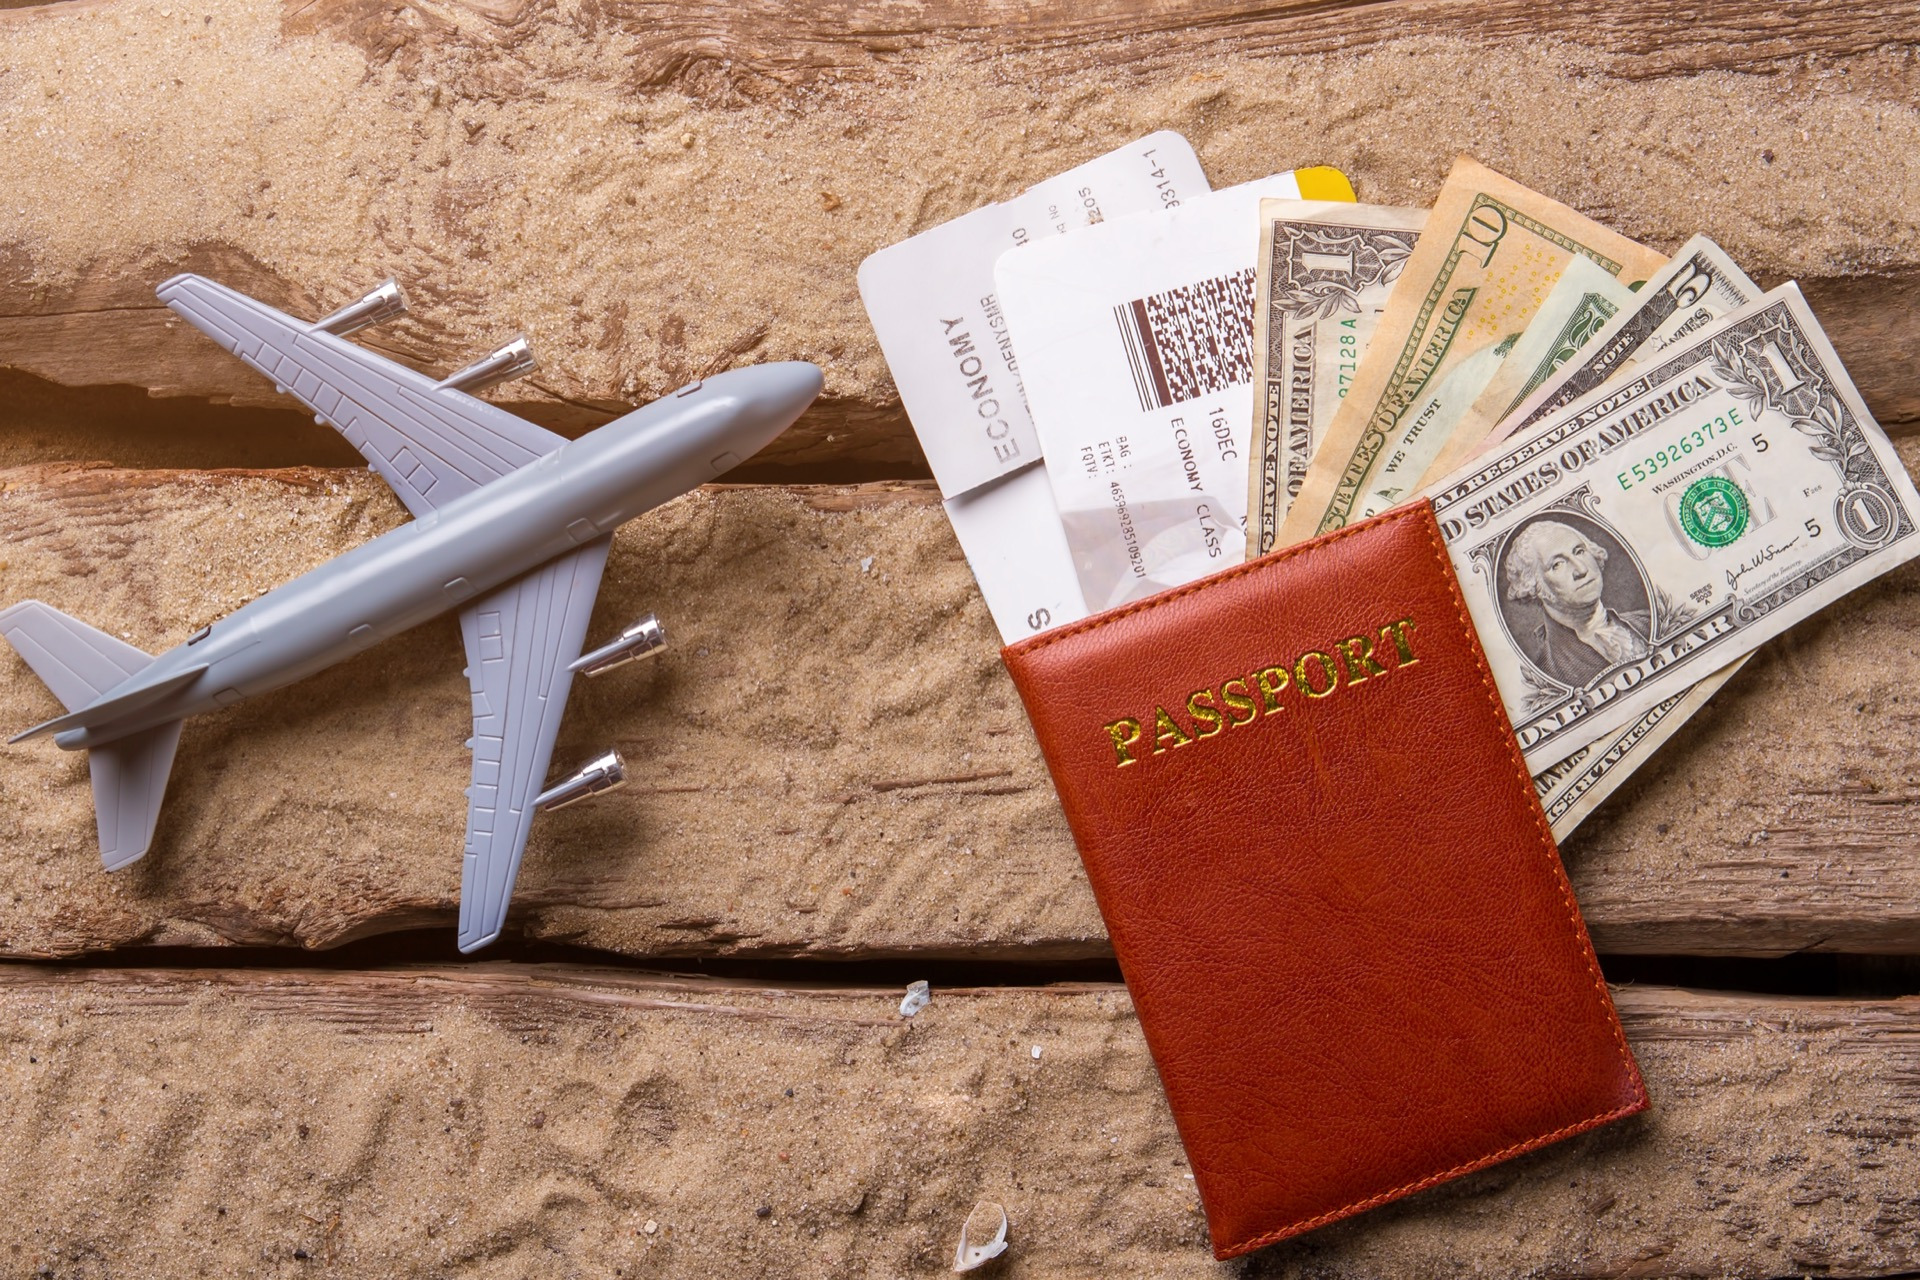 Toy plane and passport. Ticket with passport and dollars. Let's go on tour. Big plans for summer with visa.